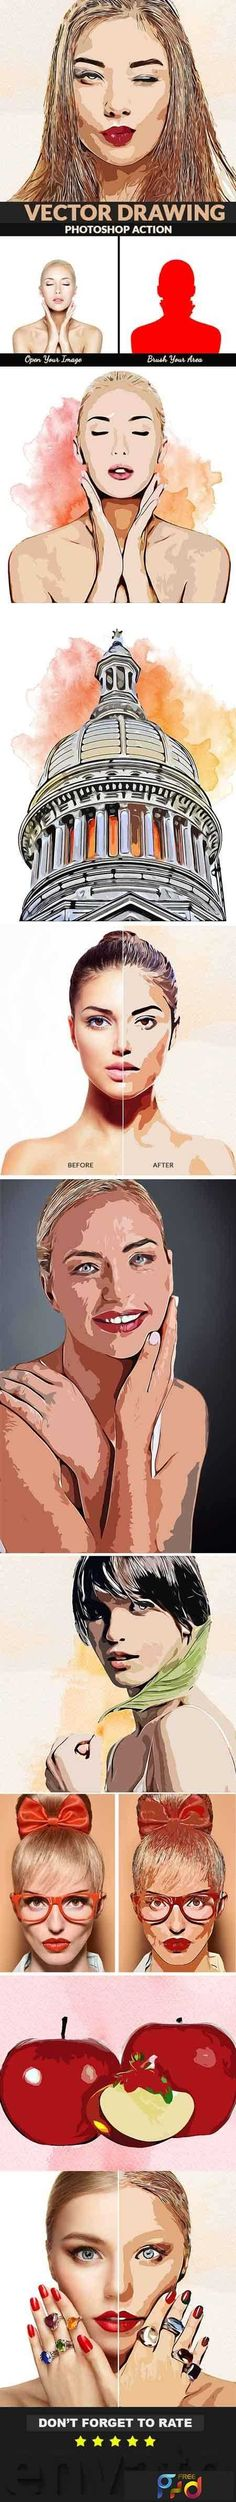 Vector Drawing Photoshop Action: Photo Effects Photoshop created by Keepdesign. Photoshop Actions For Photographers, Best Photoshop Actions, Effects Photoshop, Photoshop Photos, Photoshop Design, Photoshop Photography, Photoshop Tutorial, Photo Action, Graphic Design Tutorials